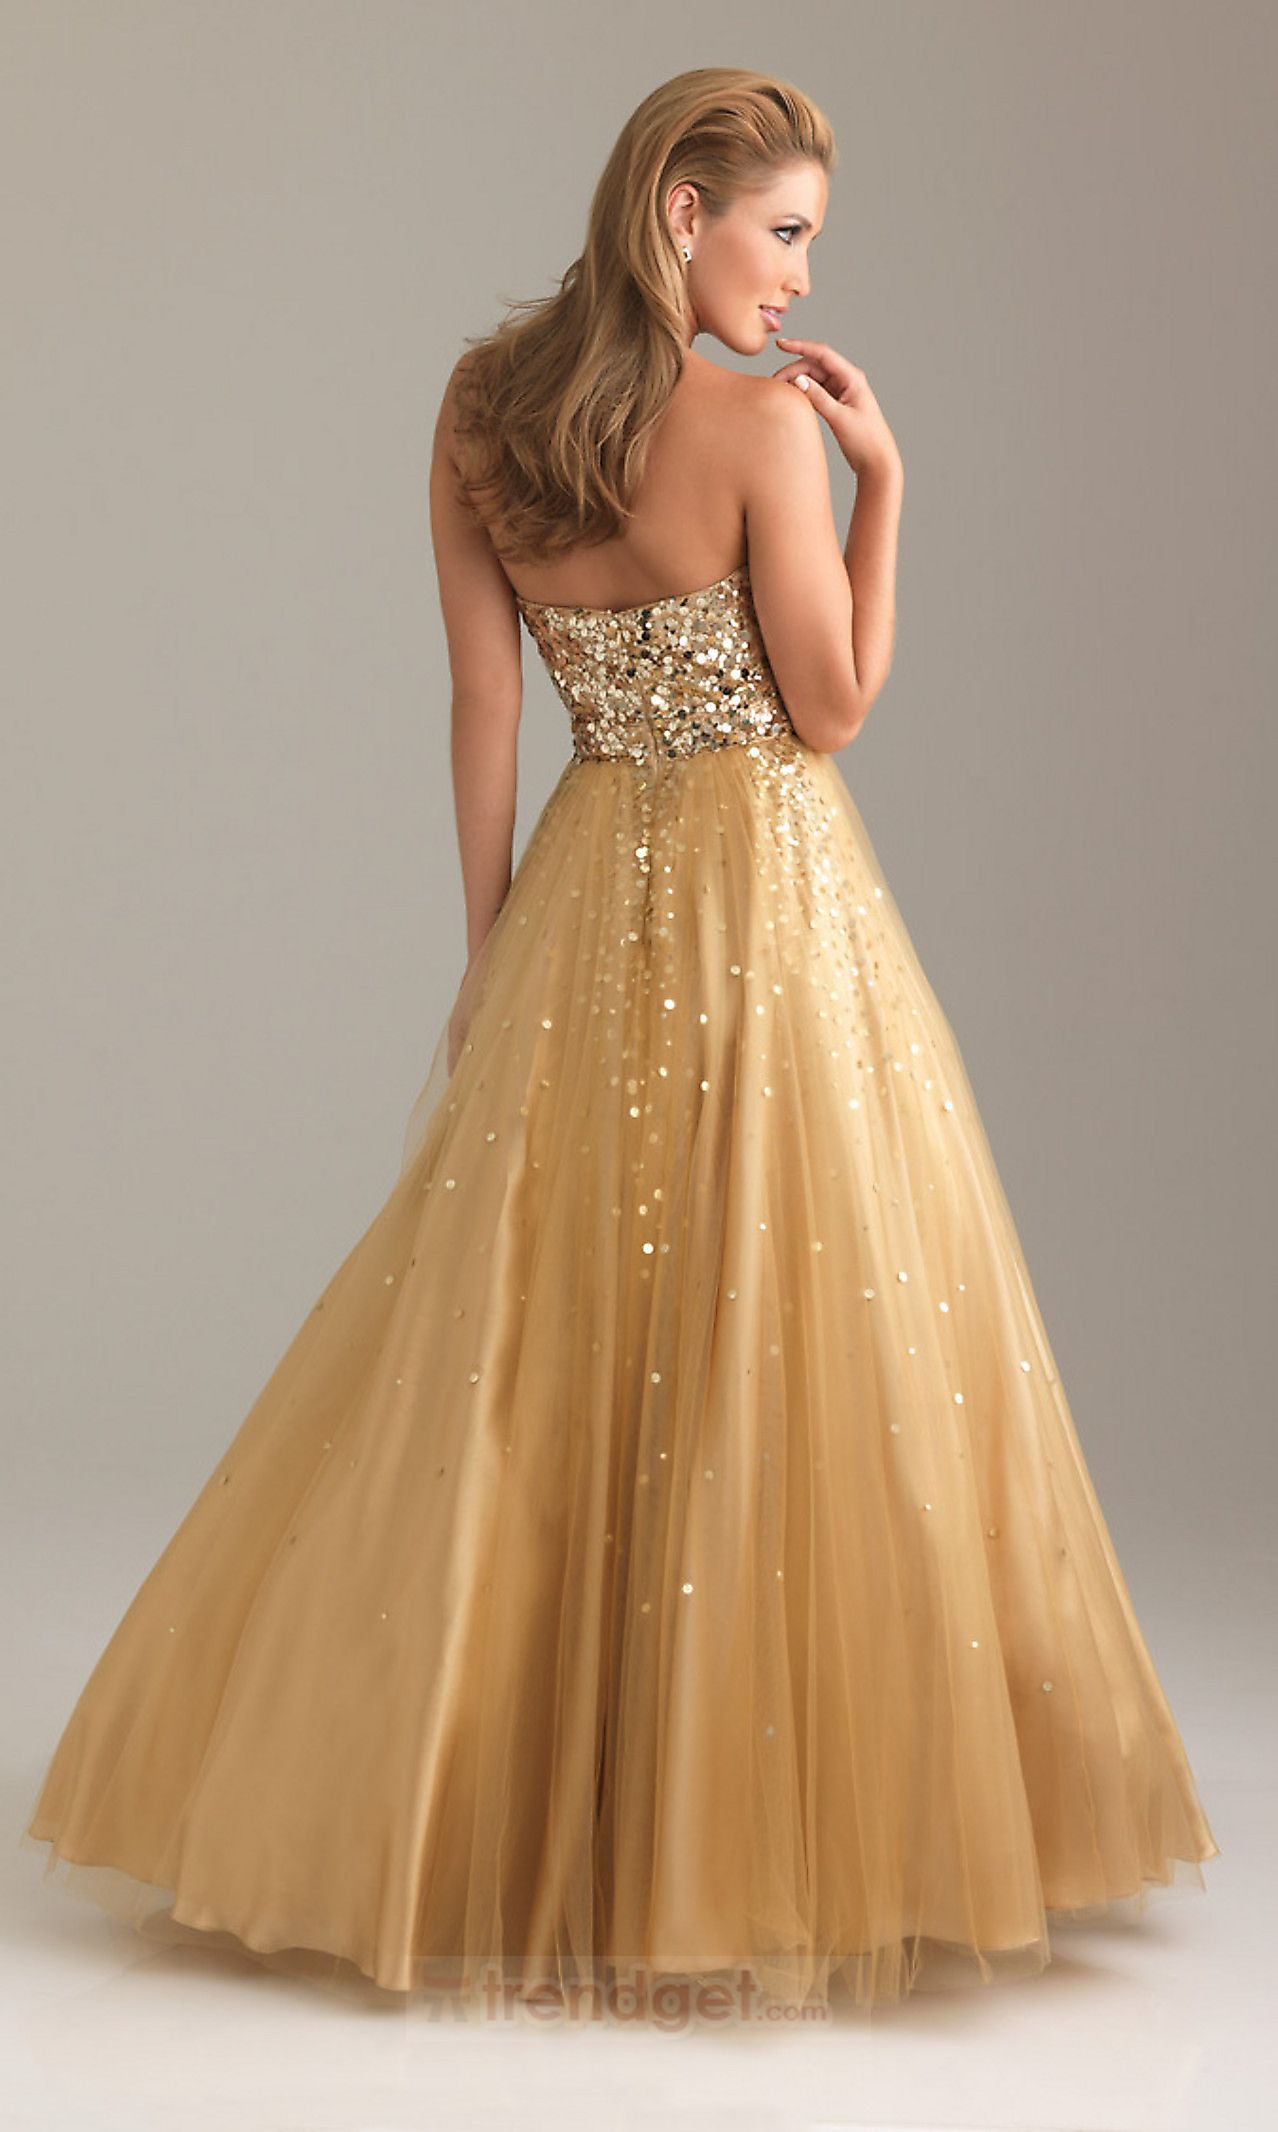 Attractive aline sweetheart floorlength organza gold prom dresses